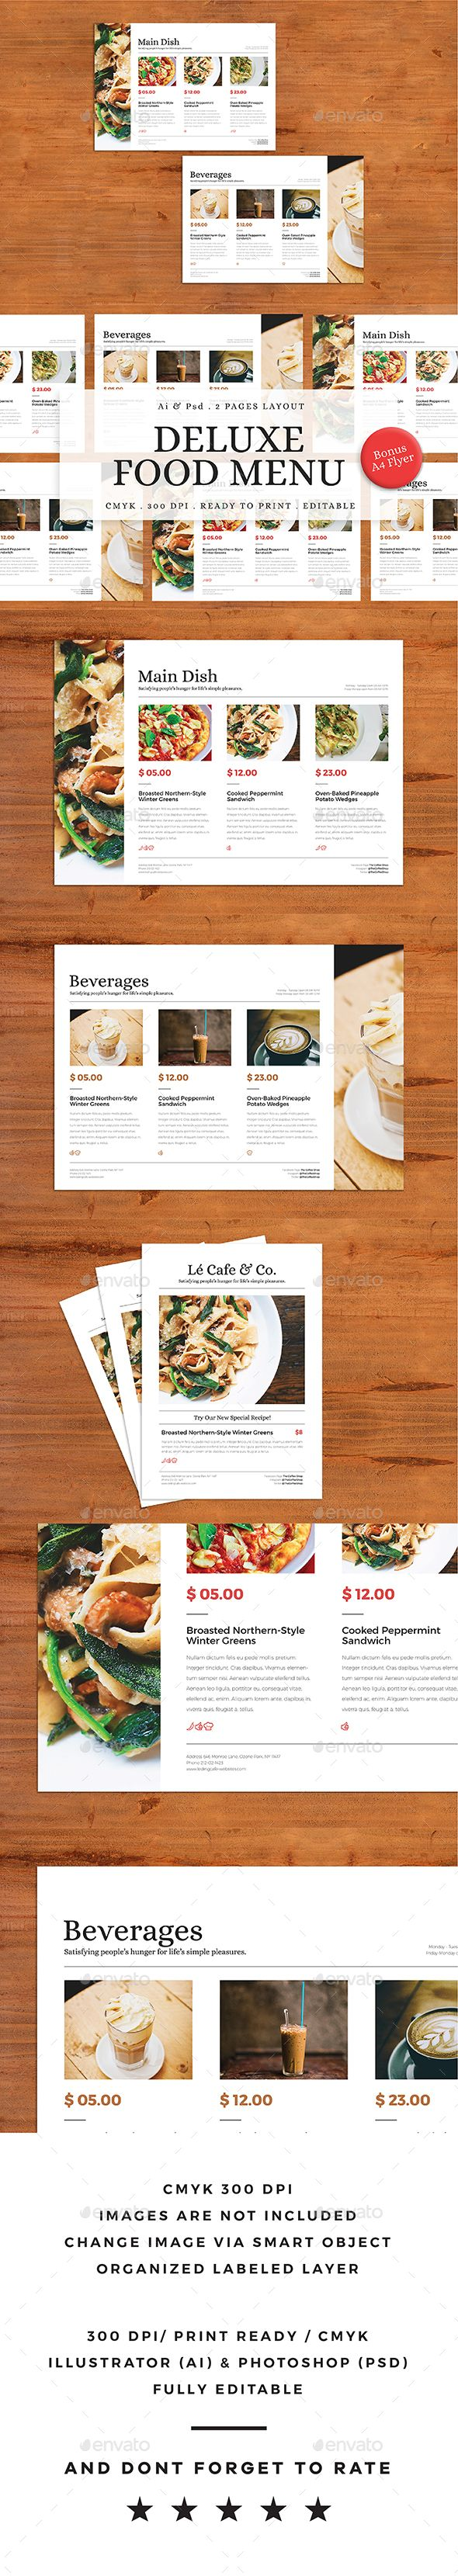 Deluxe #Food Menu + A4 Flyer Menu - Food #Menus Print #Templates Download here: https://graphicriver.net/item/deluxe-food-menu-a4-flyer-menu/19576618?ref=alena994